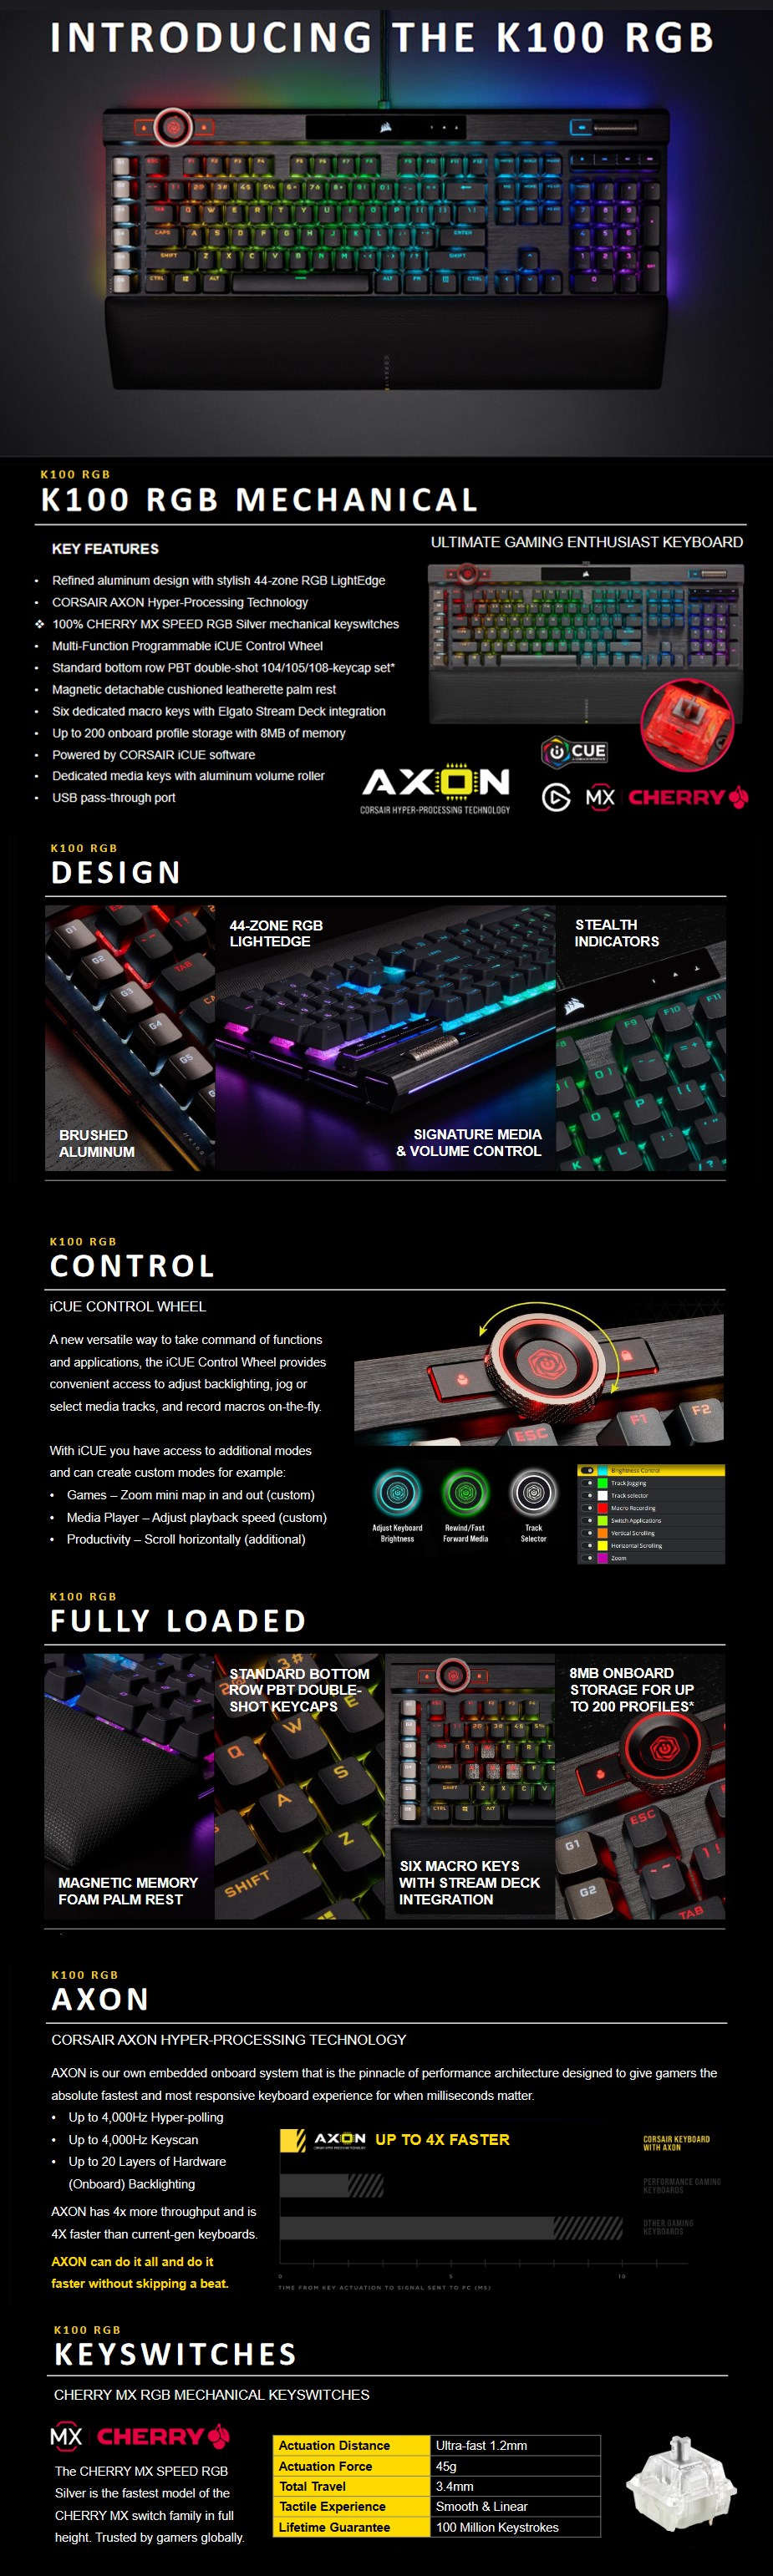 Corsair K100 RGB Mechanical Gaming Keyboard - Cherry MX Speed Switches - Desktop Overview 1